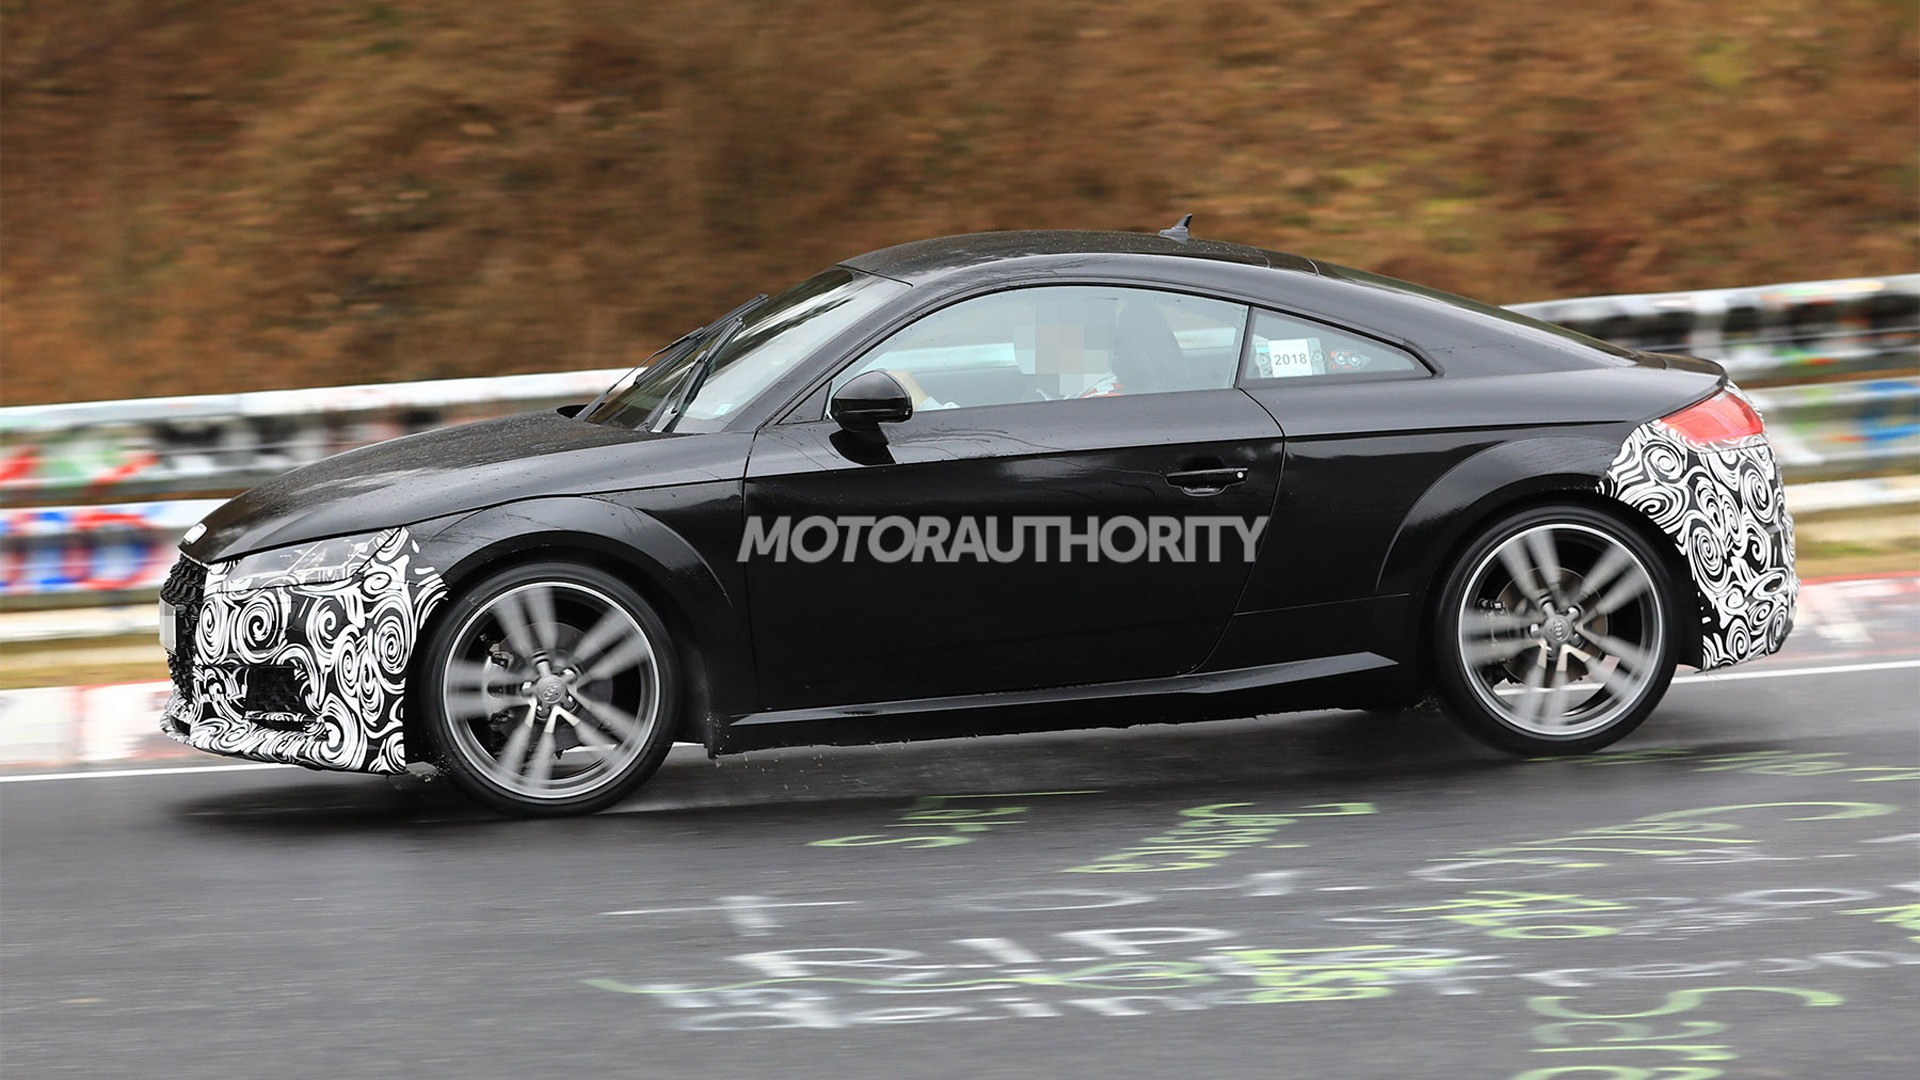 52 The Best 2020 Audi TT Exterior and Interior